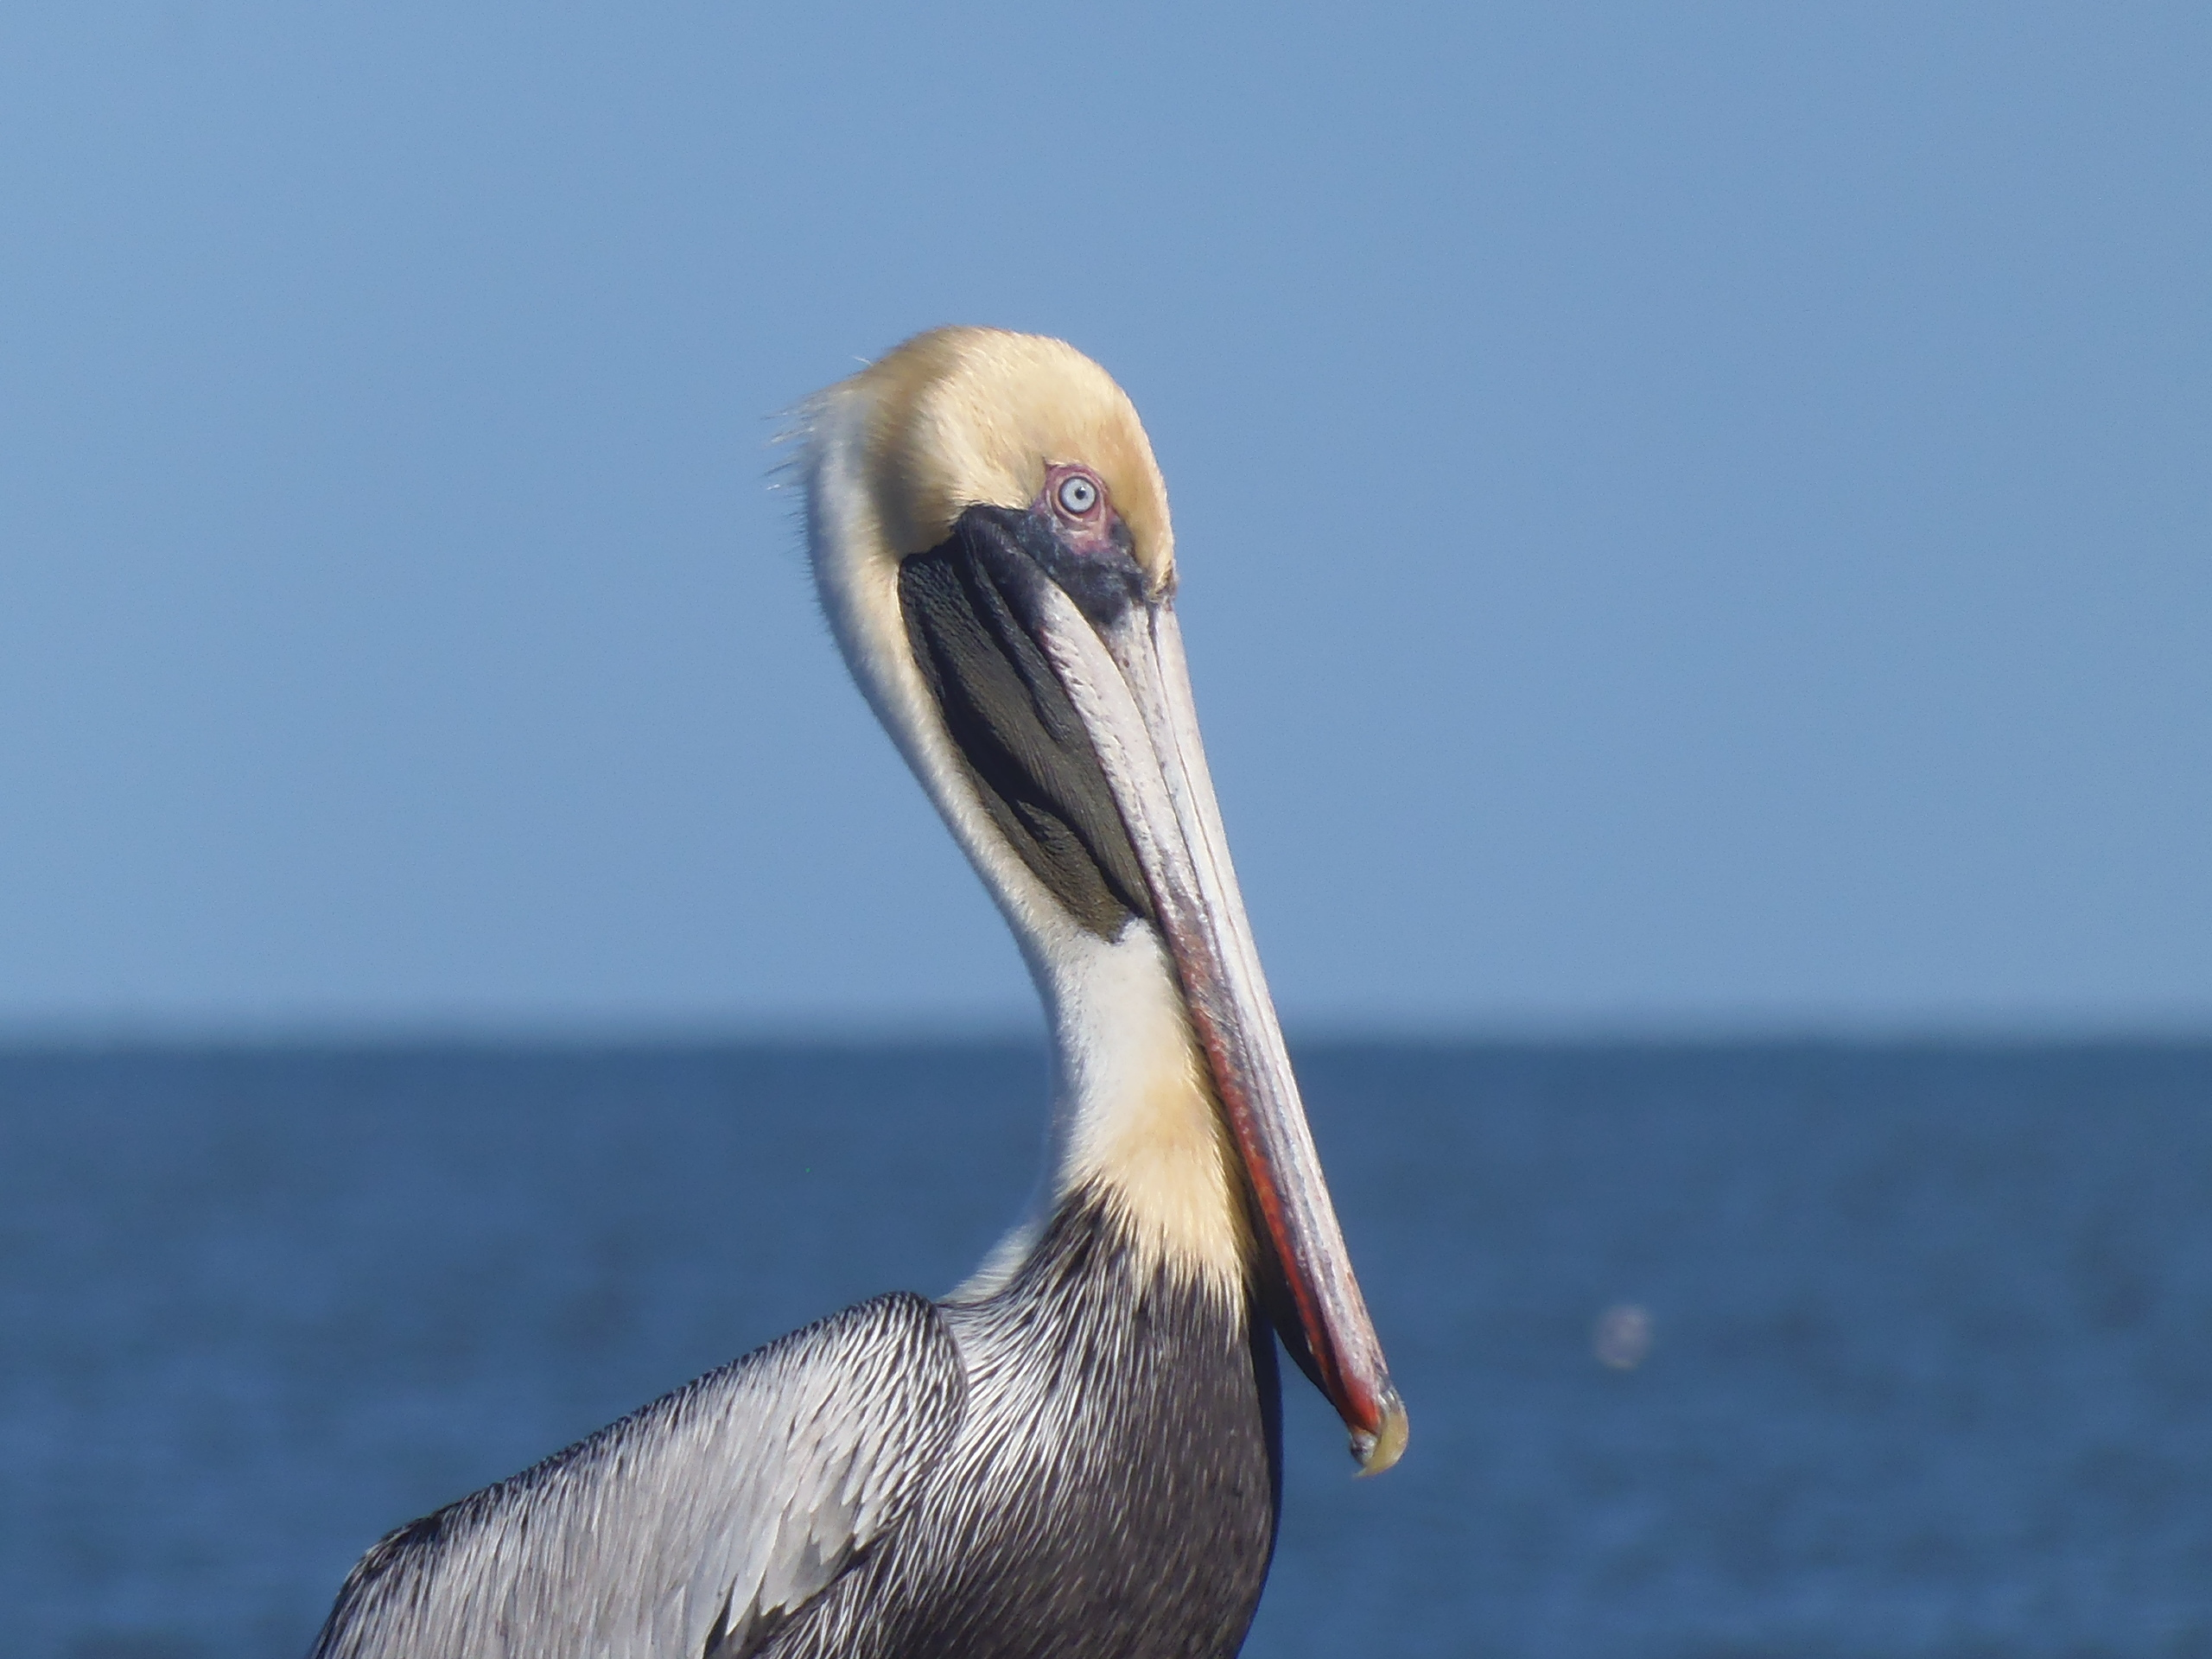 2560x1920 Pelican, 29 North, in Songwriting Contest Committee, by Gretchen Quarterman, for WWALS.net, 25 February 2018